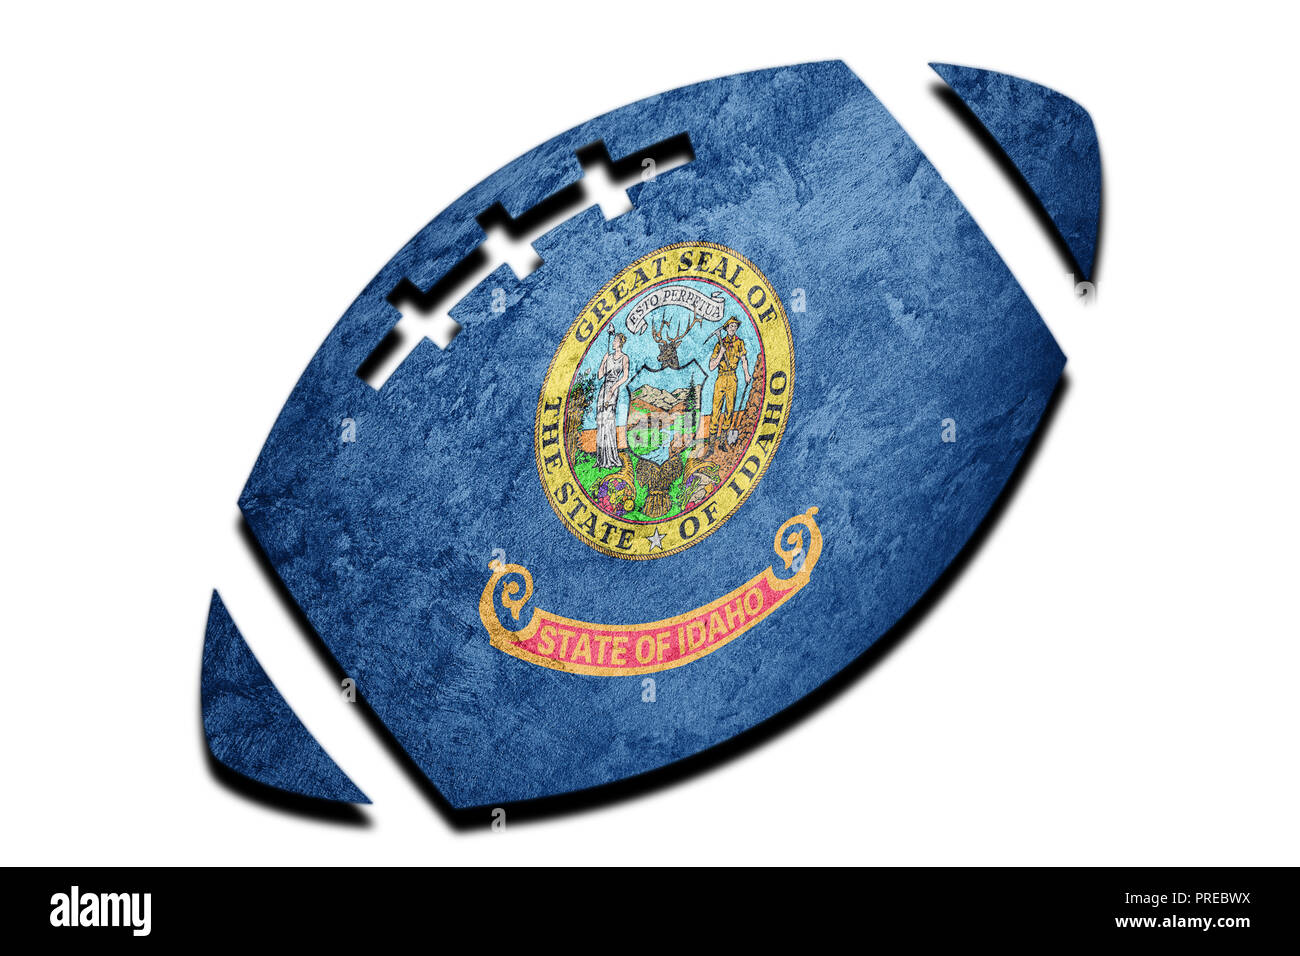 Rugby ball Idaho state flag. Idaho flag background Rugby ball - Stock Image